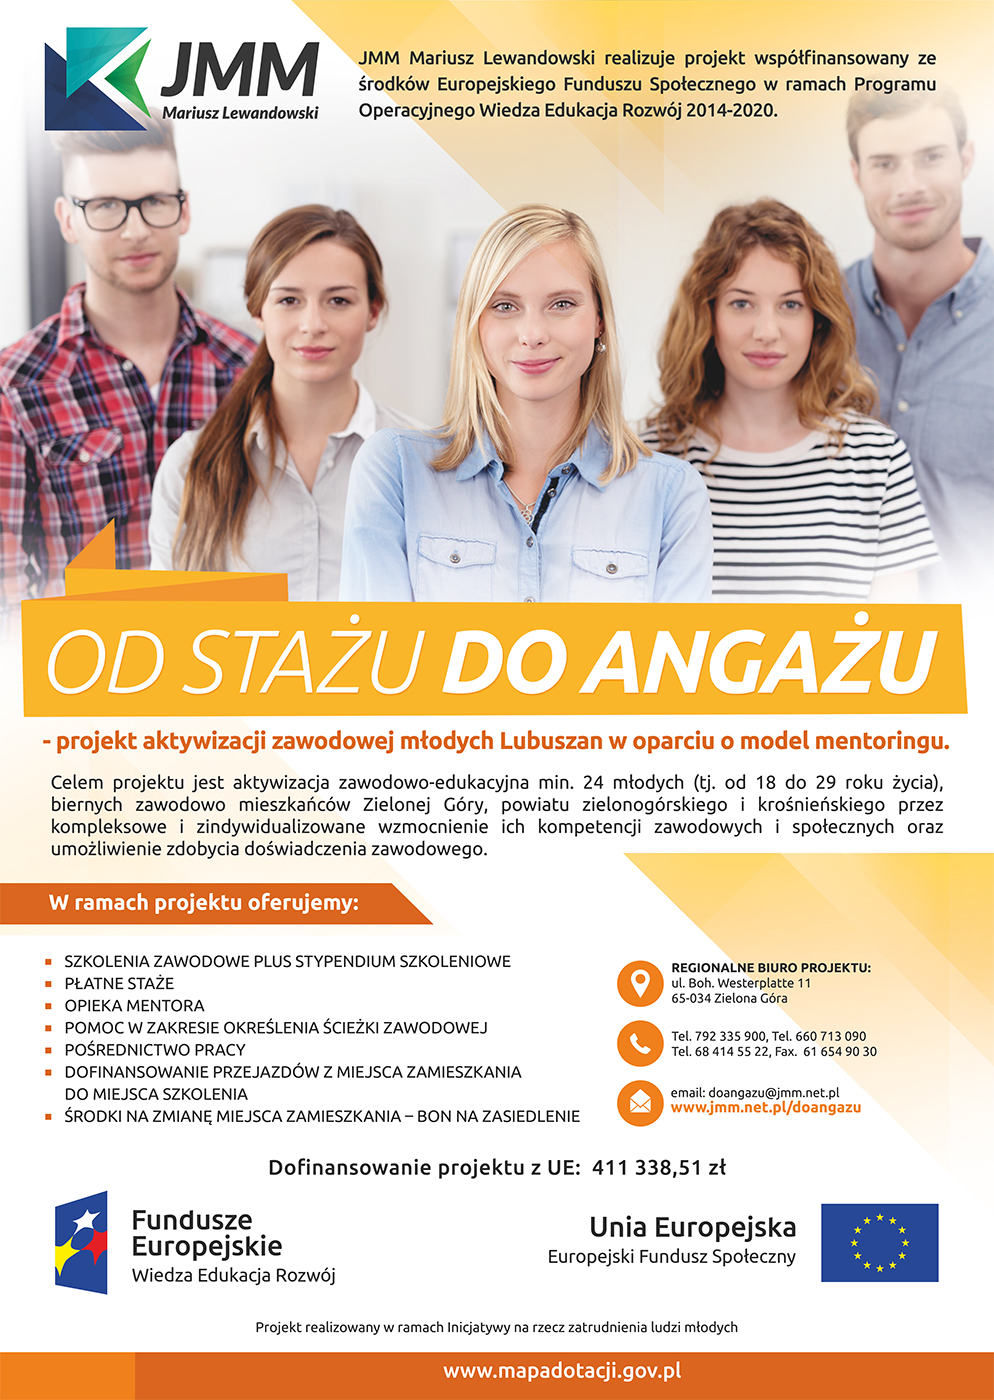 529 plakat OD STAZU DO ANGAZU